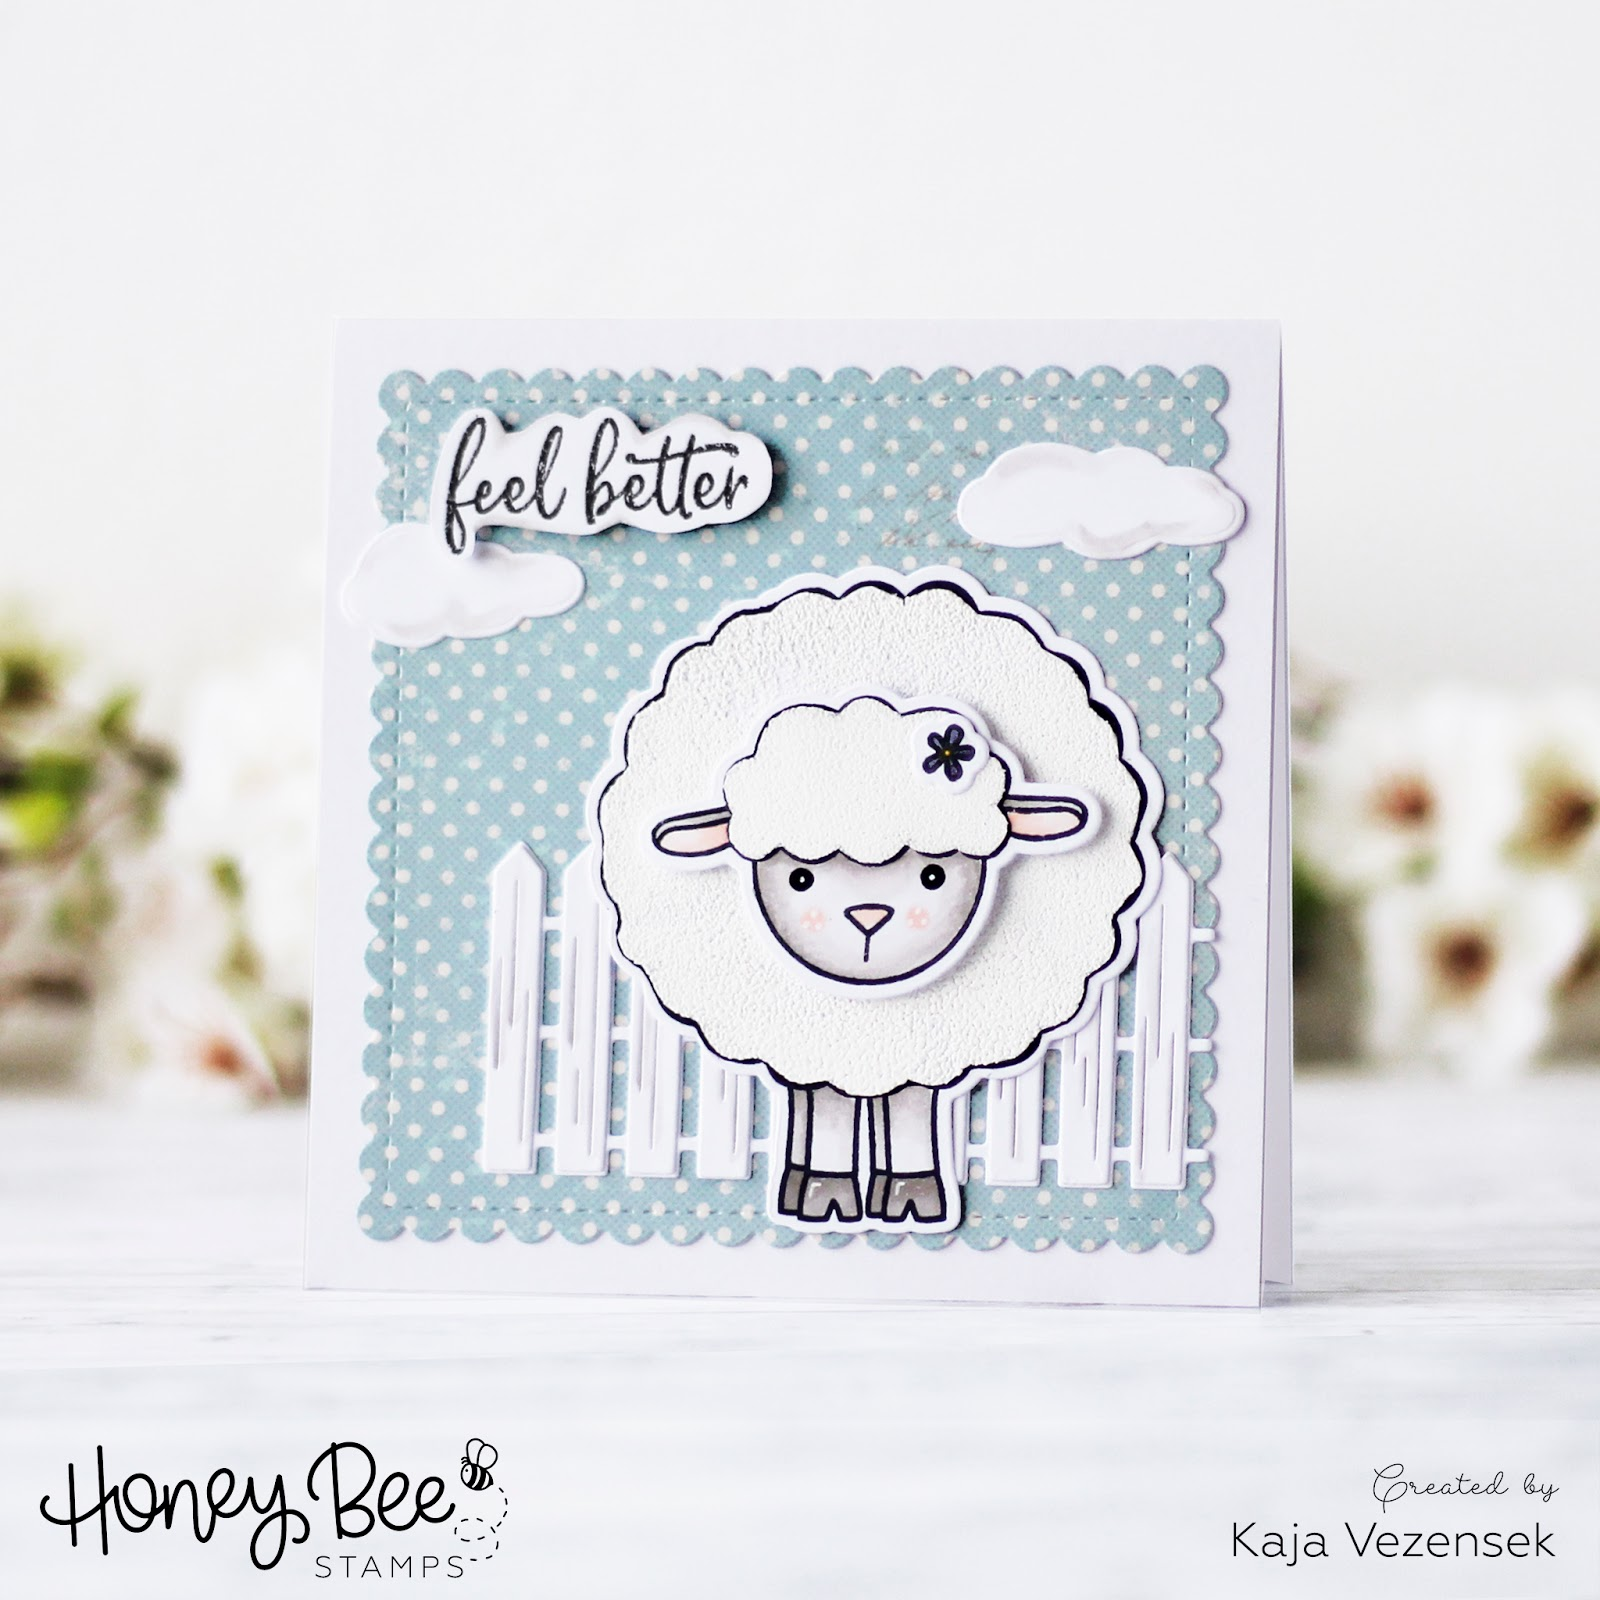 Honey bee and WOW blog hop